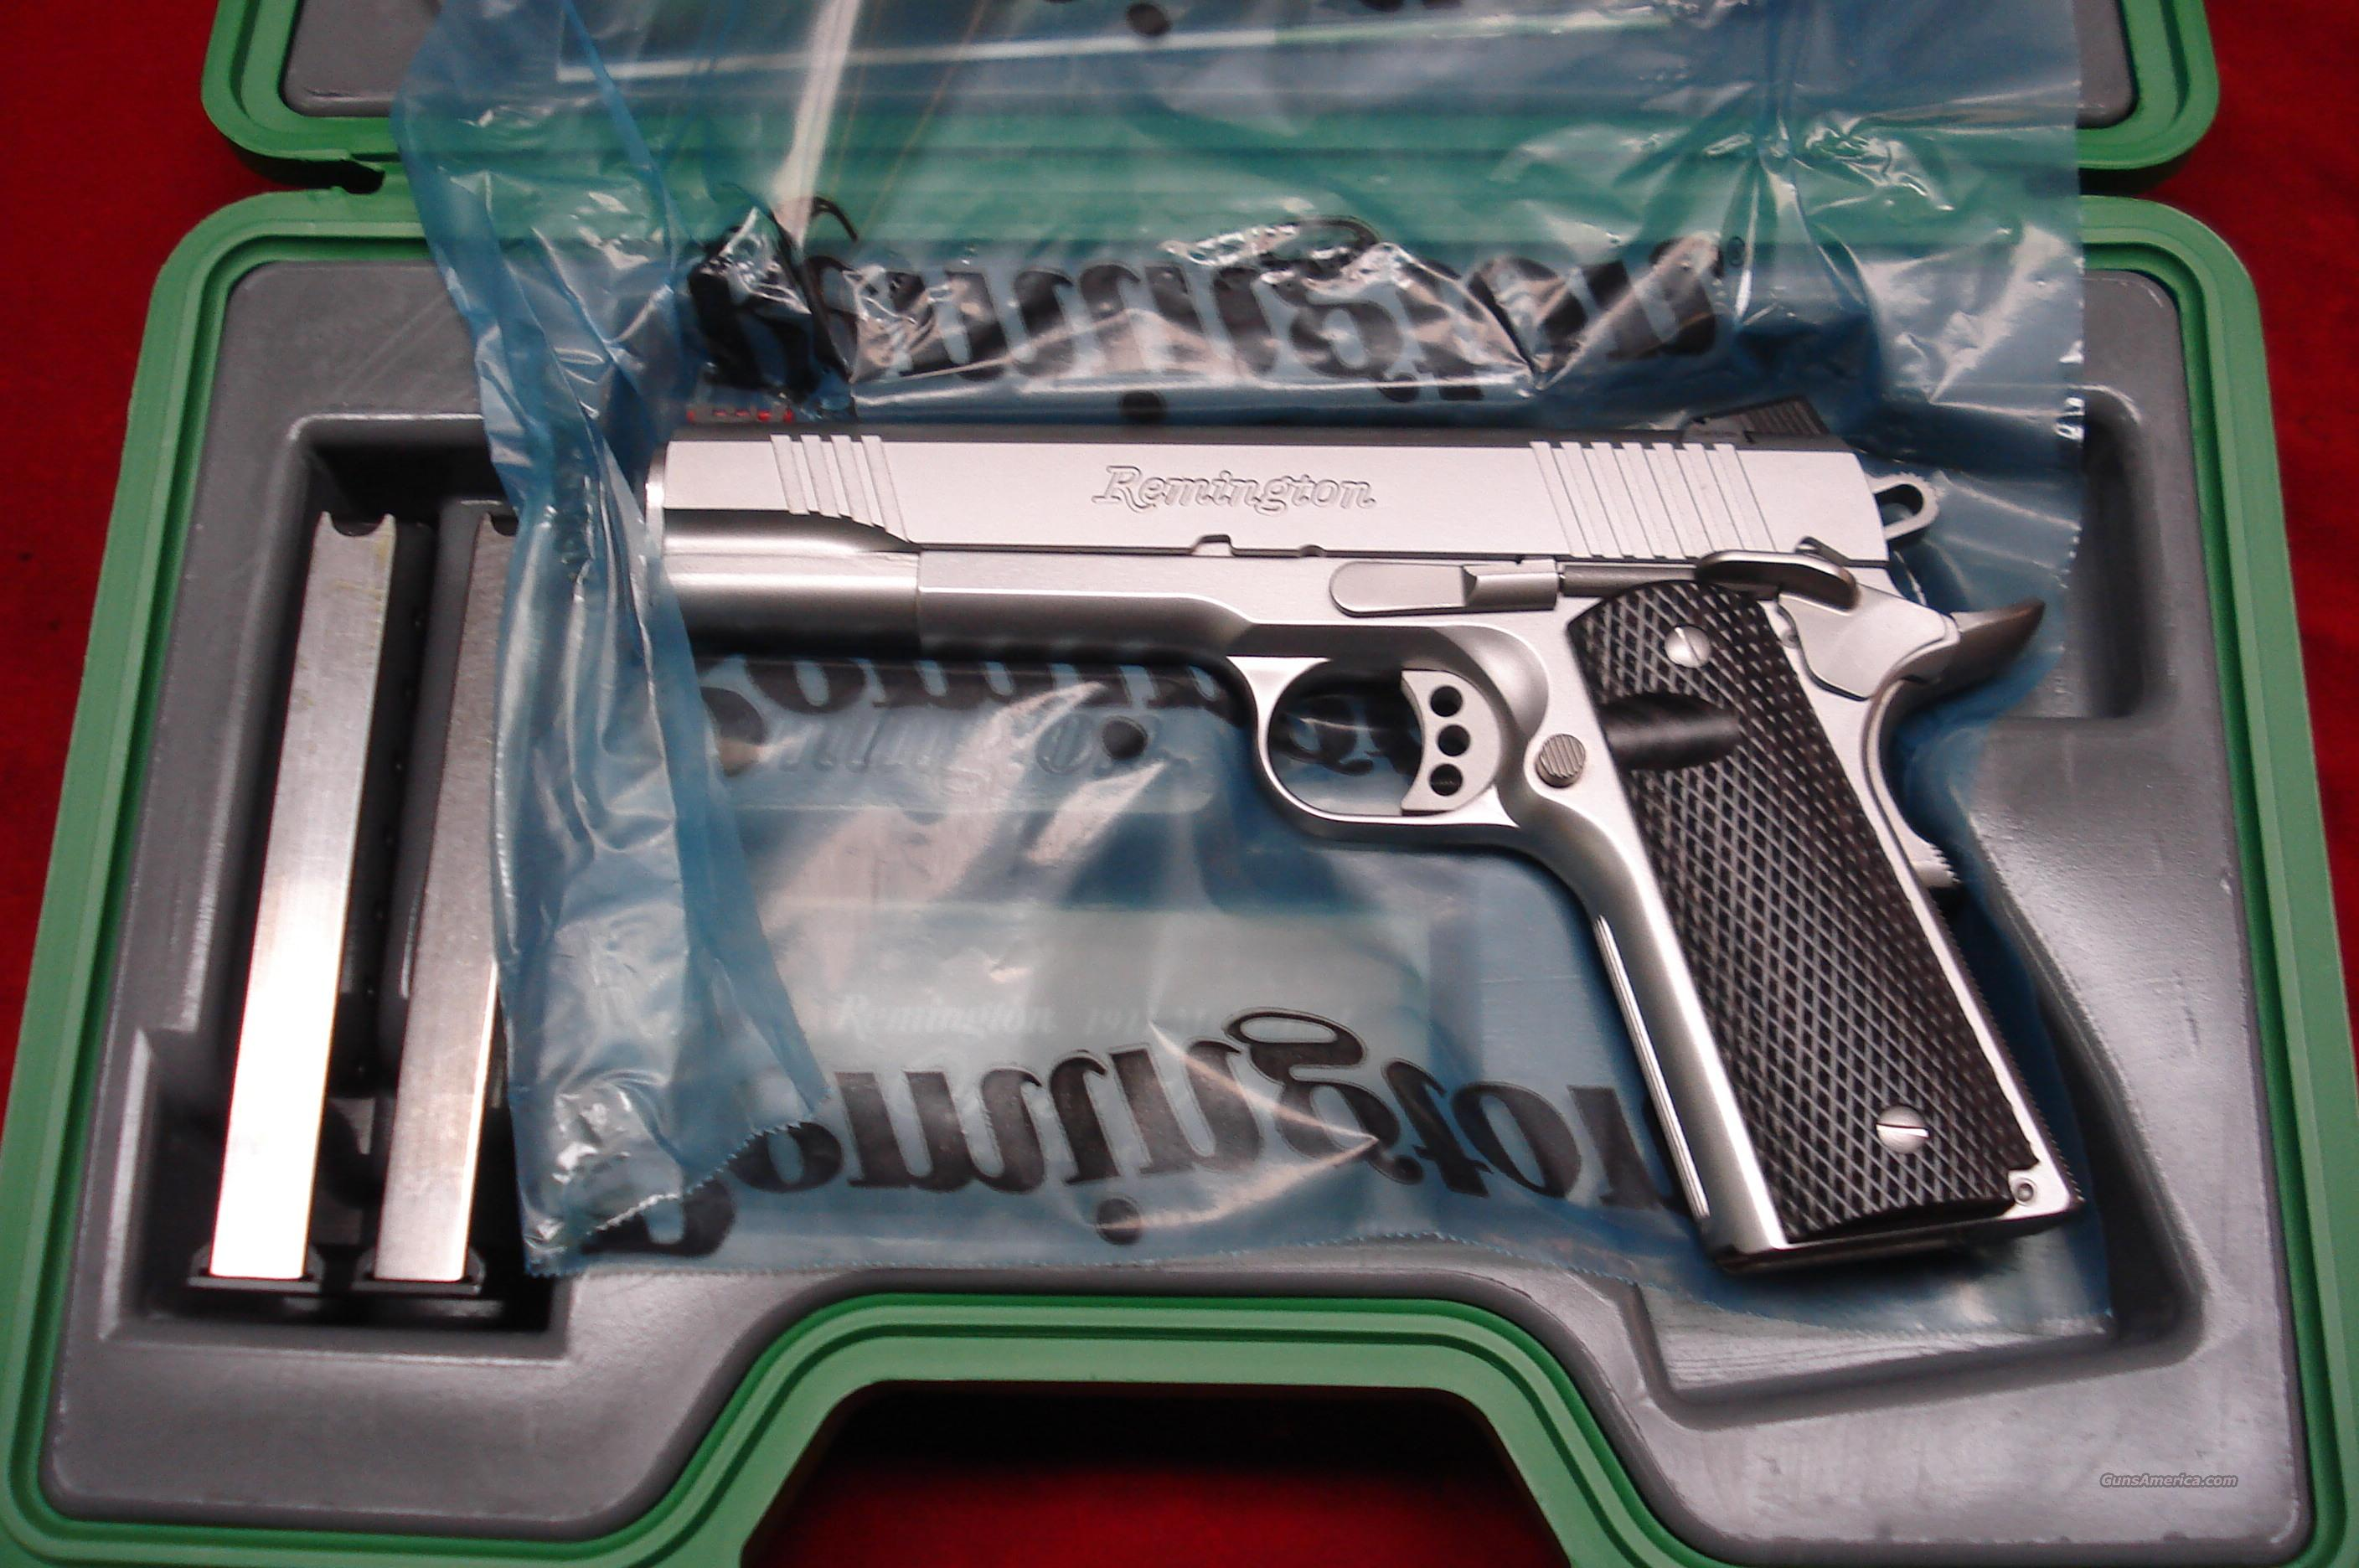 REMINGTON STAINLESS ENHANCED EDITION 1911 R1 45ACP NEW {{ IN STOCK READY TO SHIP }}  Guns > Pistols > Remington Pistols - Modern